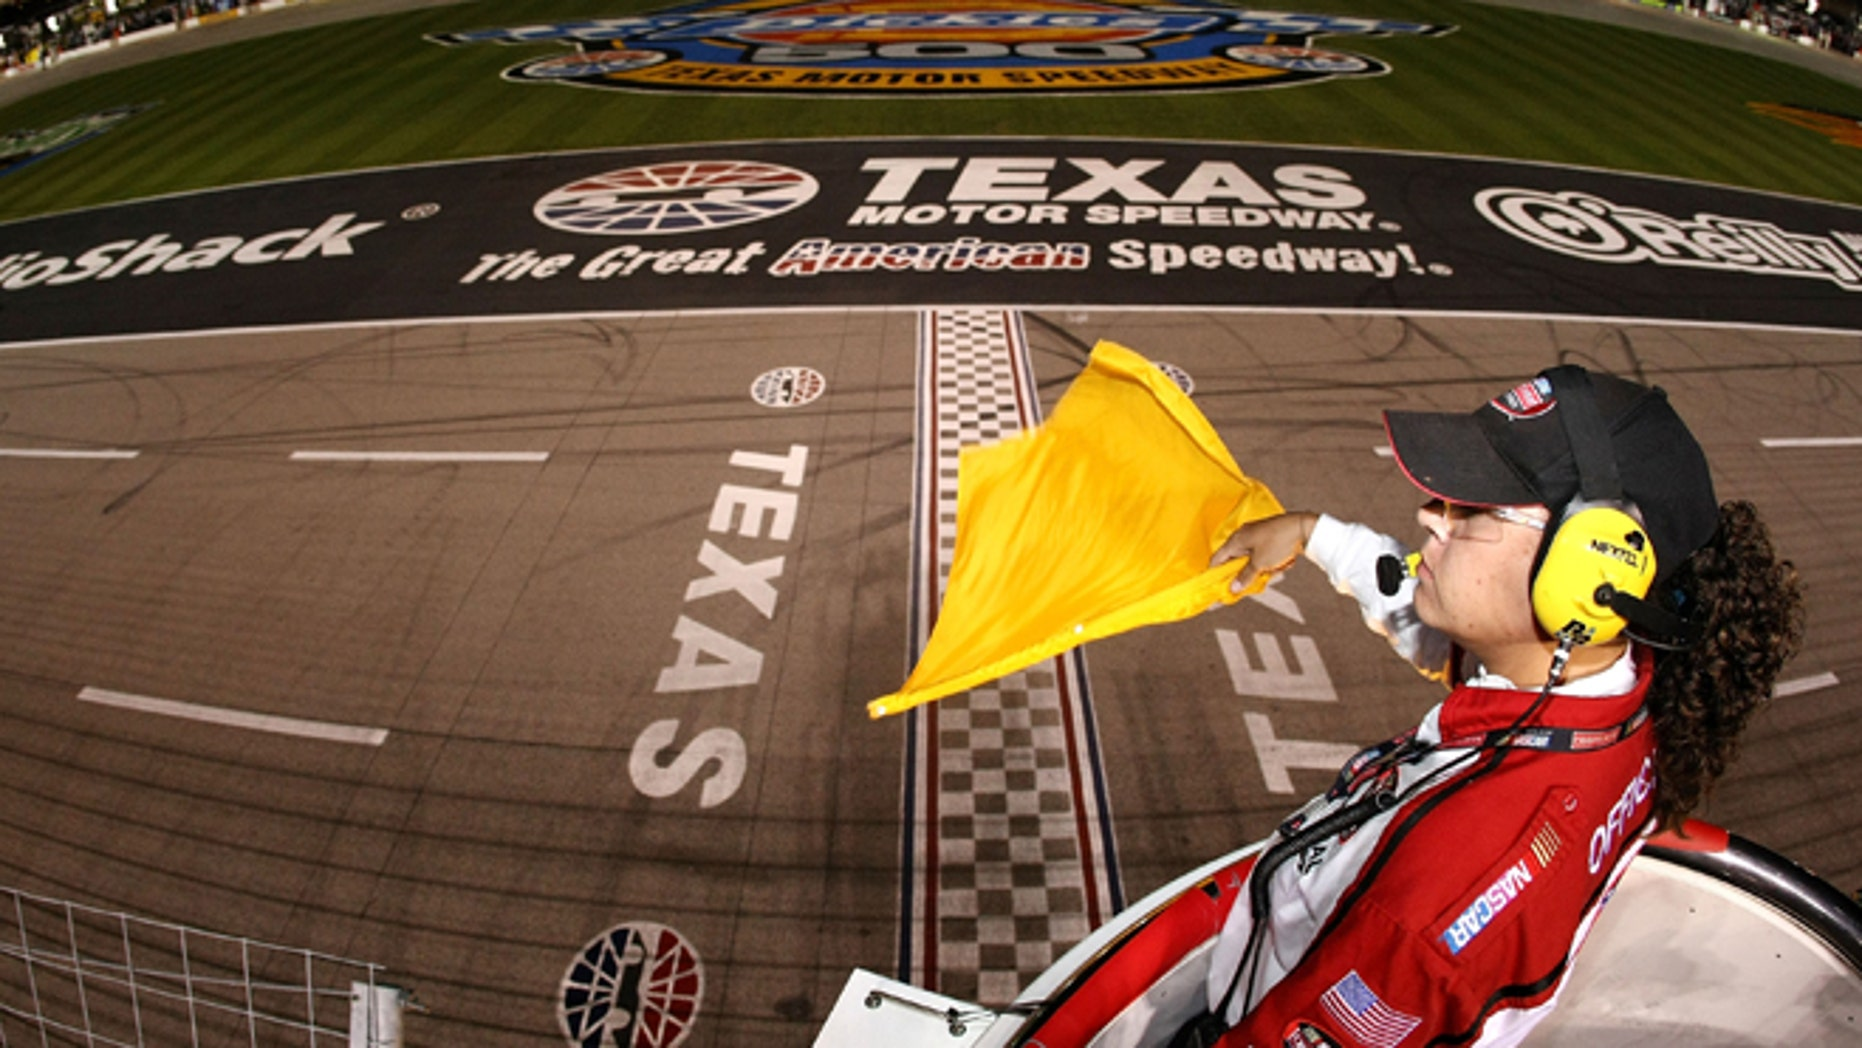 Kim Lopez in a 2007 file photo at Texas Motor Speedway.